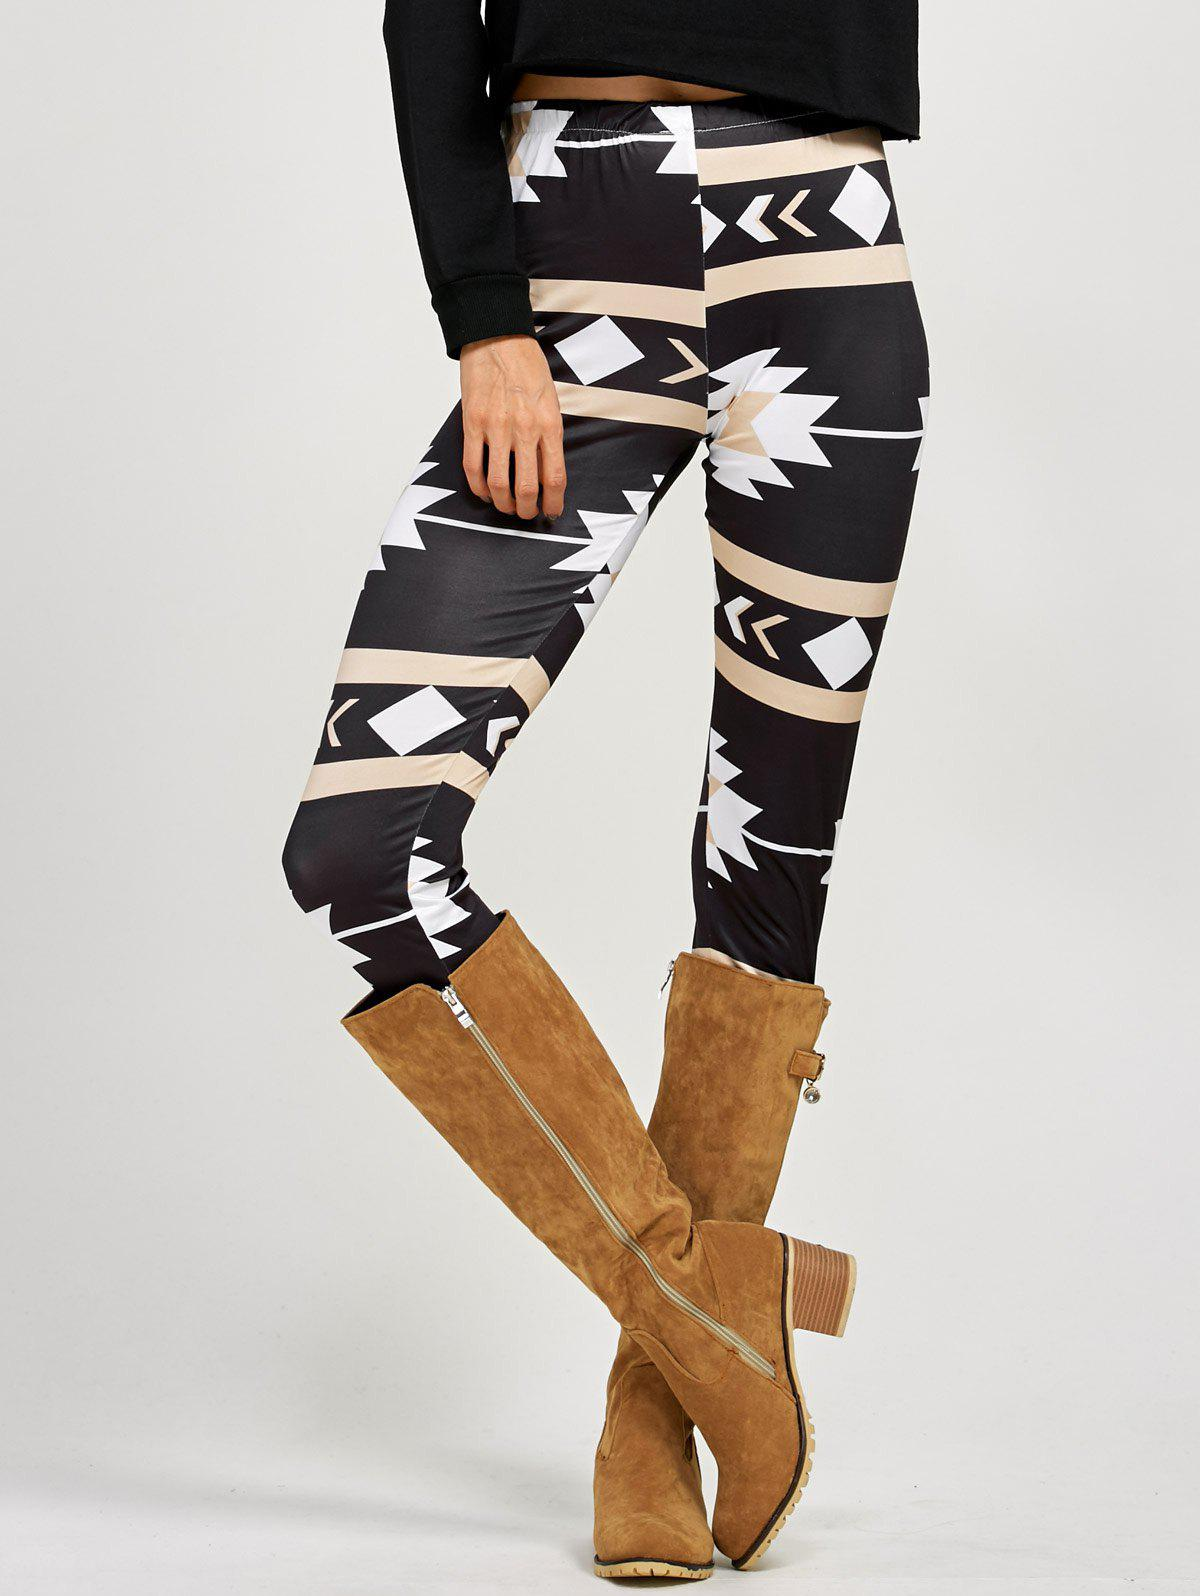 Affordable Stretchy Patterned Leggings